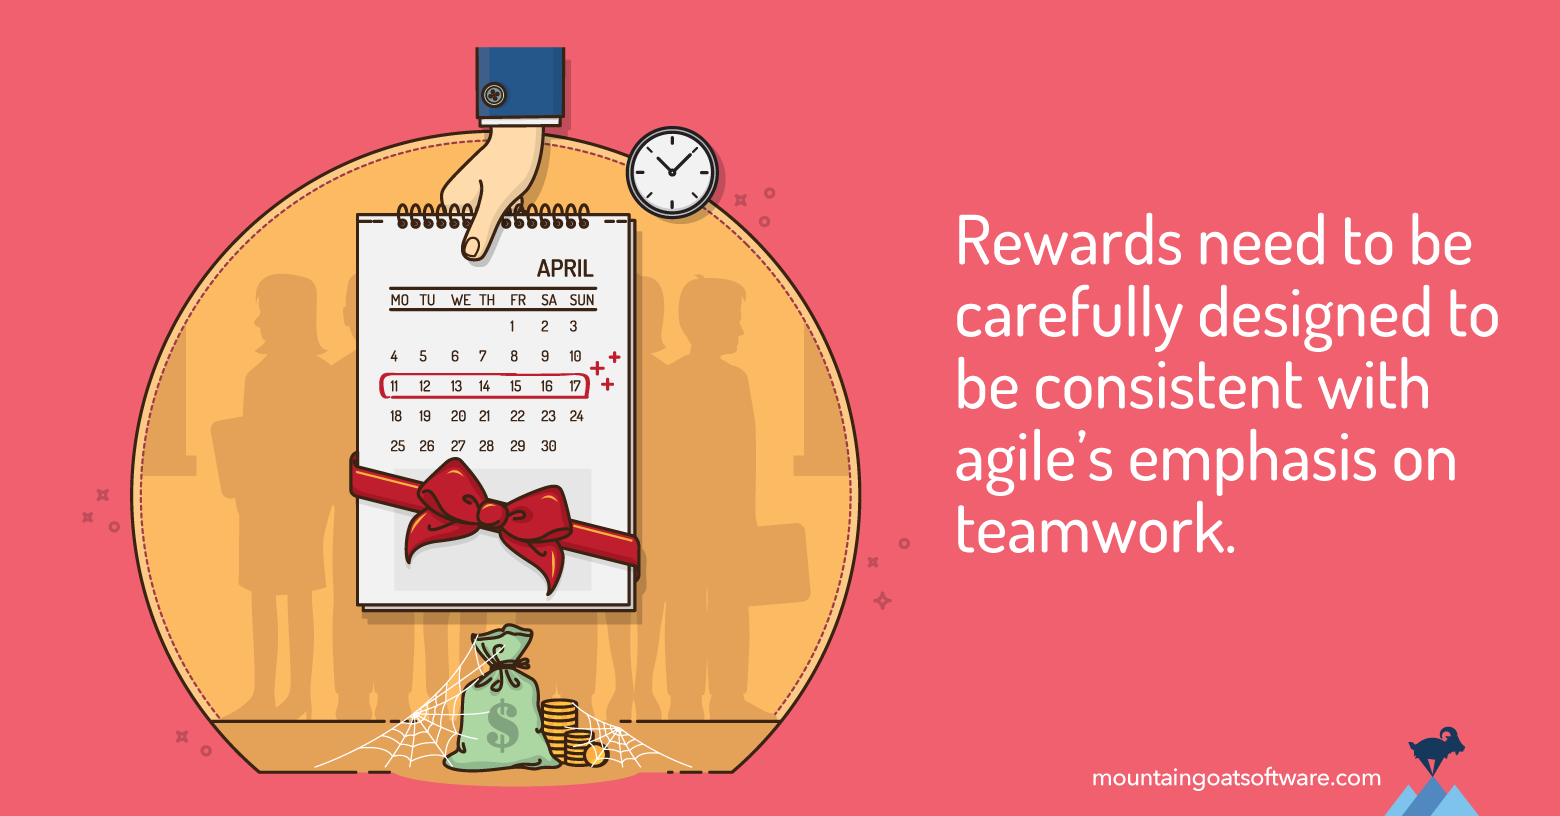 Rewarding scrum teams with time, money or days off